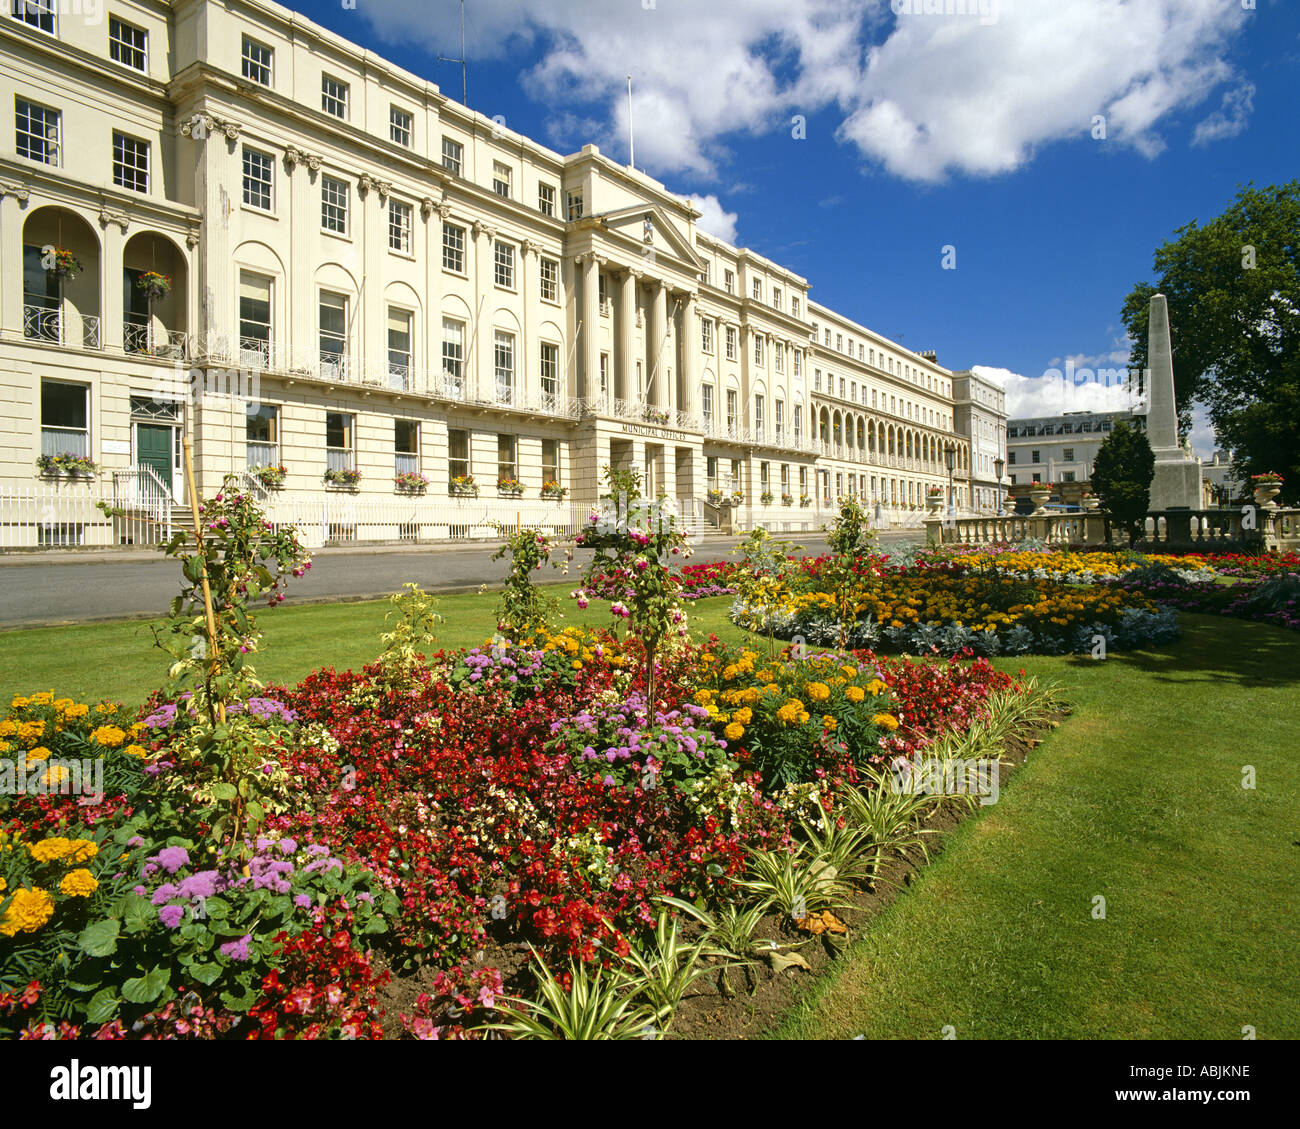 GB - GLOUCESTERSHIRE:  Municipal Offices at Cheltenham Spa - Stock Image